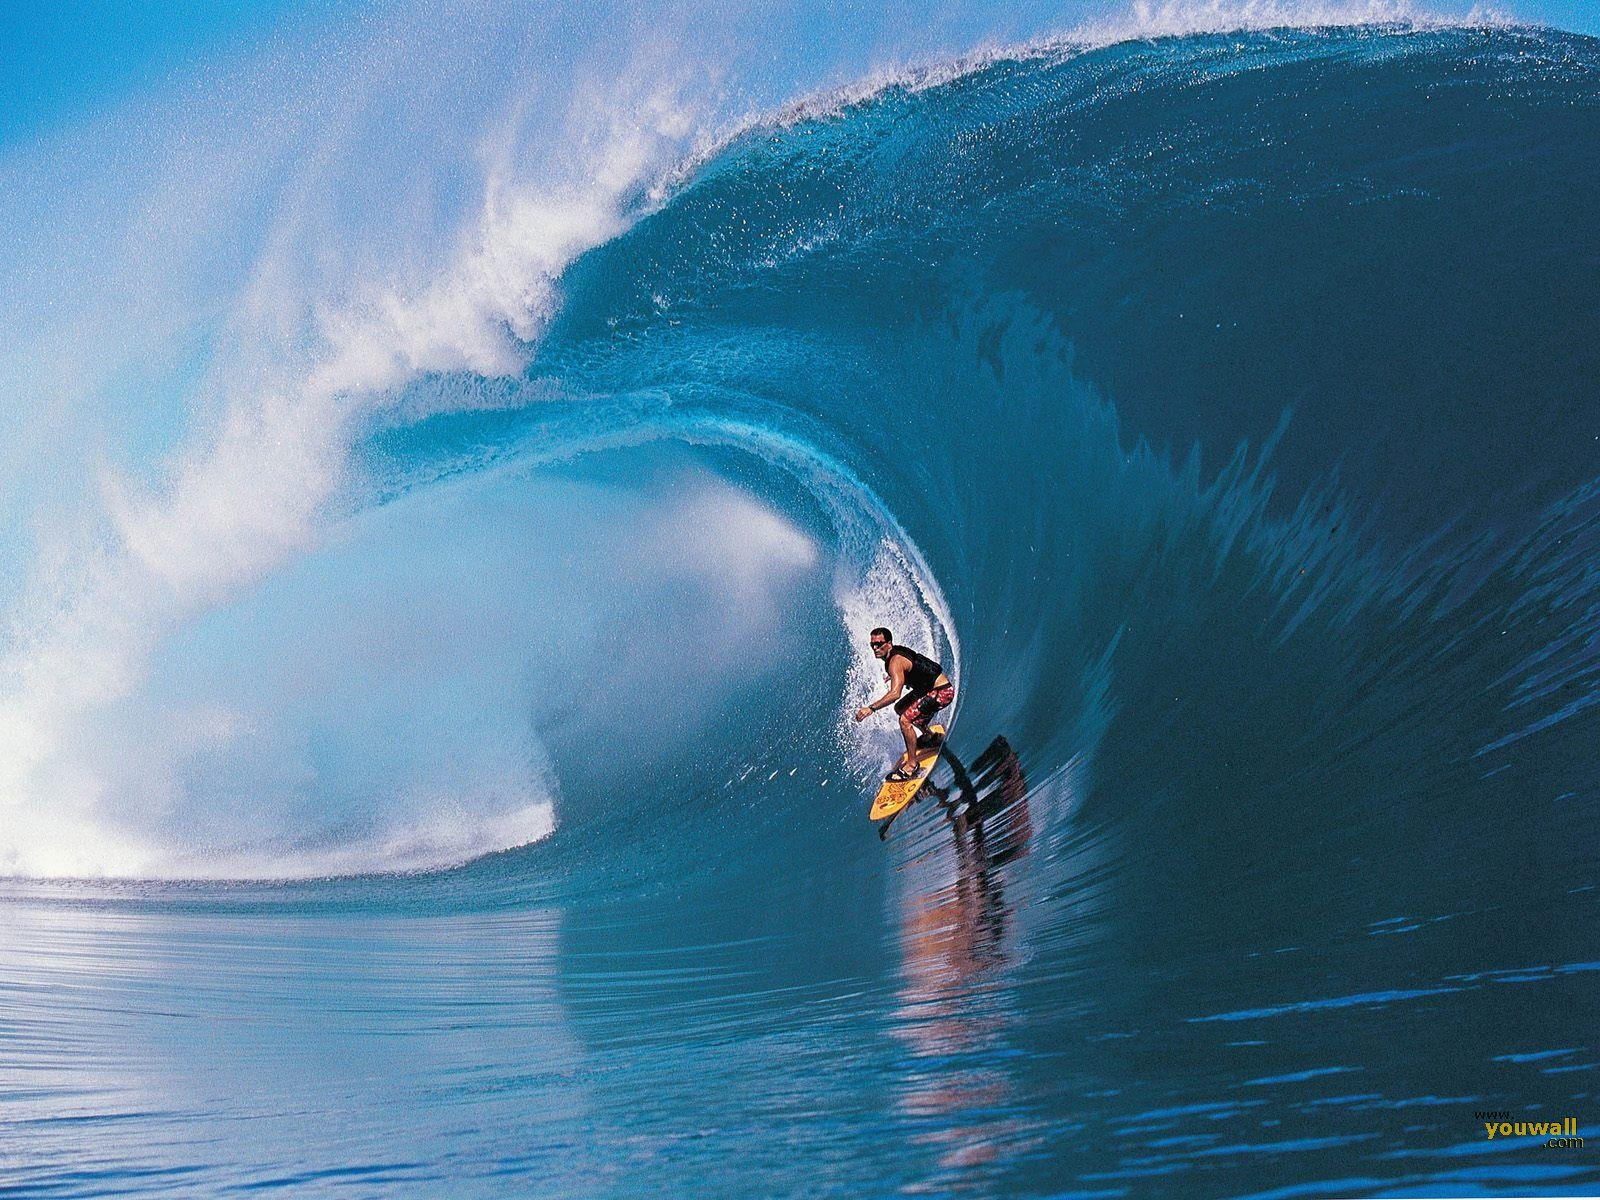 Surf Water hd Wallpaper in high resolution for free. Get Surf Water hd ...